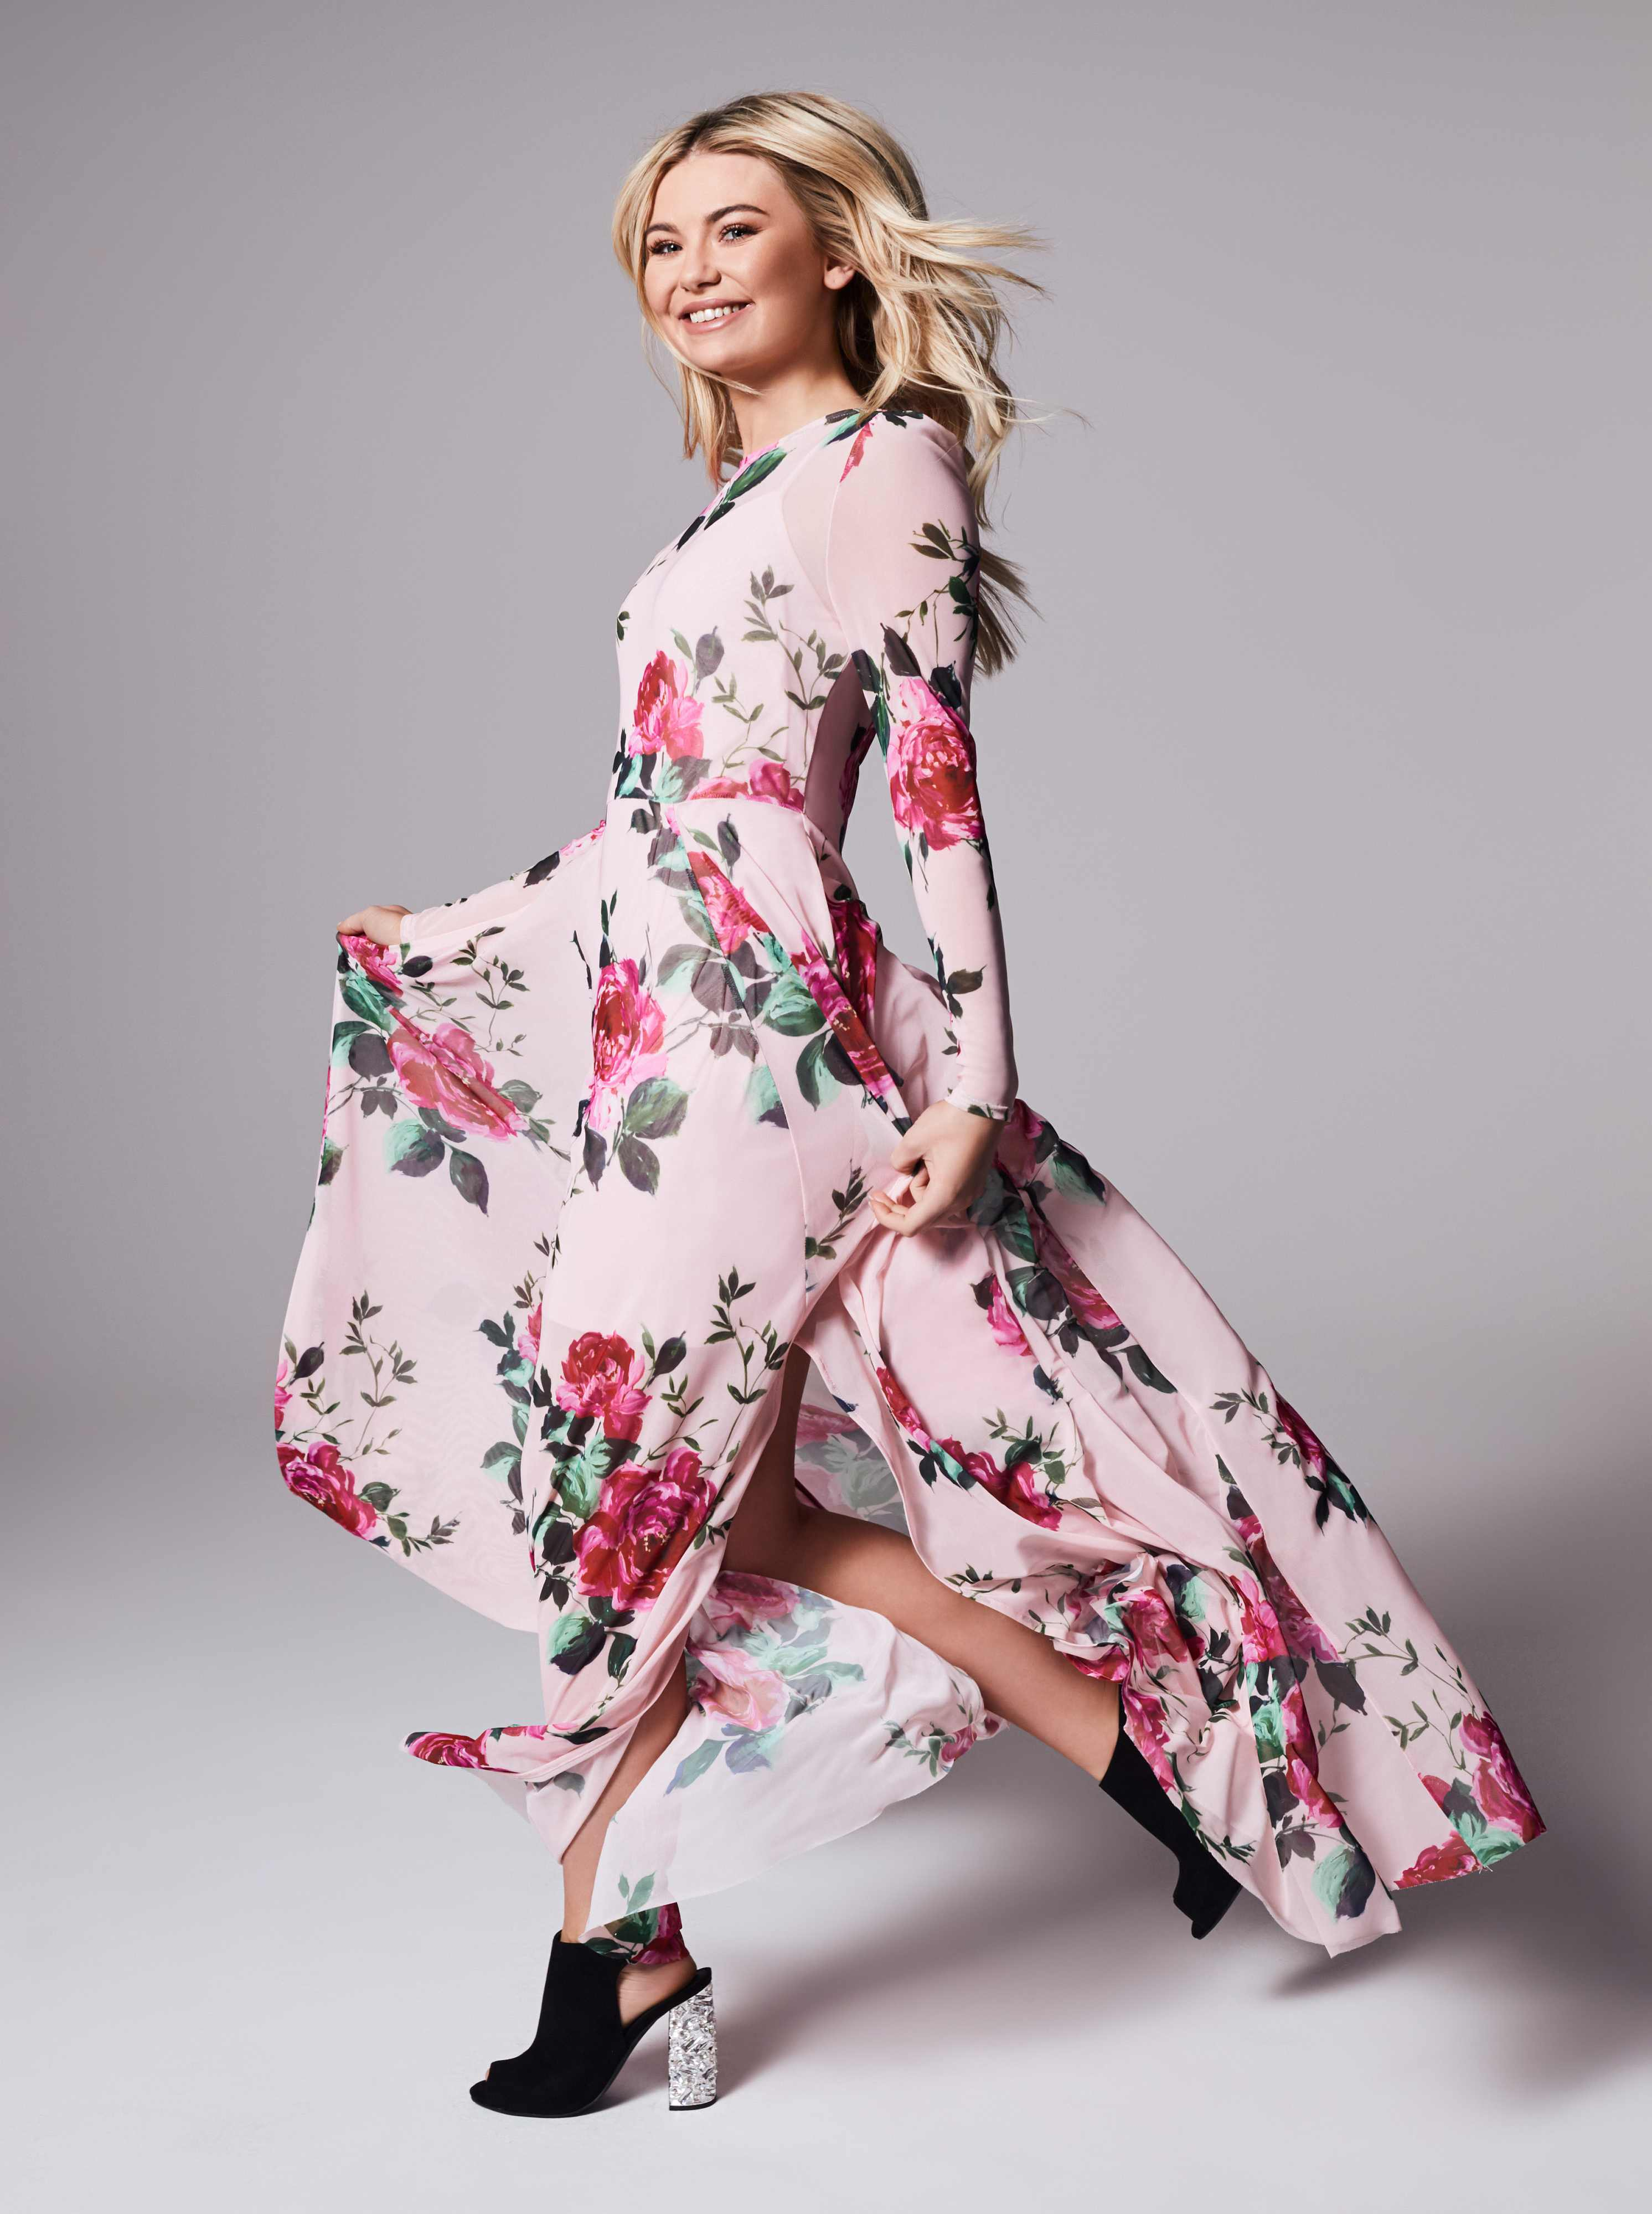 georgia 'toff' toffolo in the very spring fashion campaign